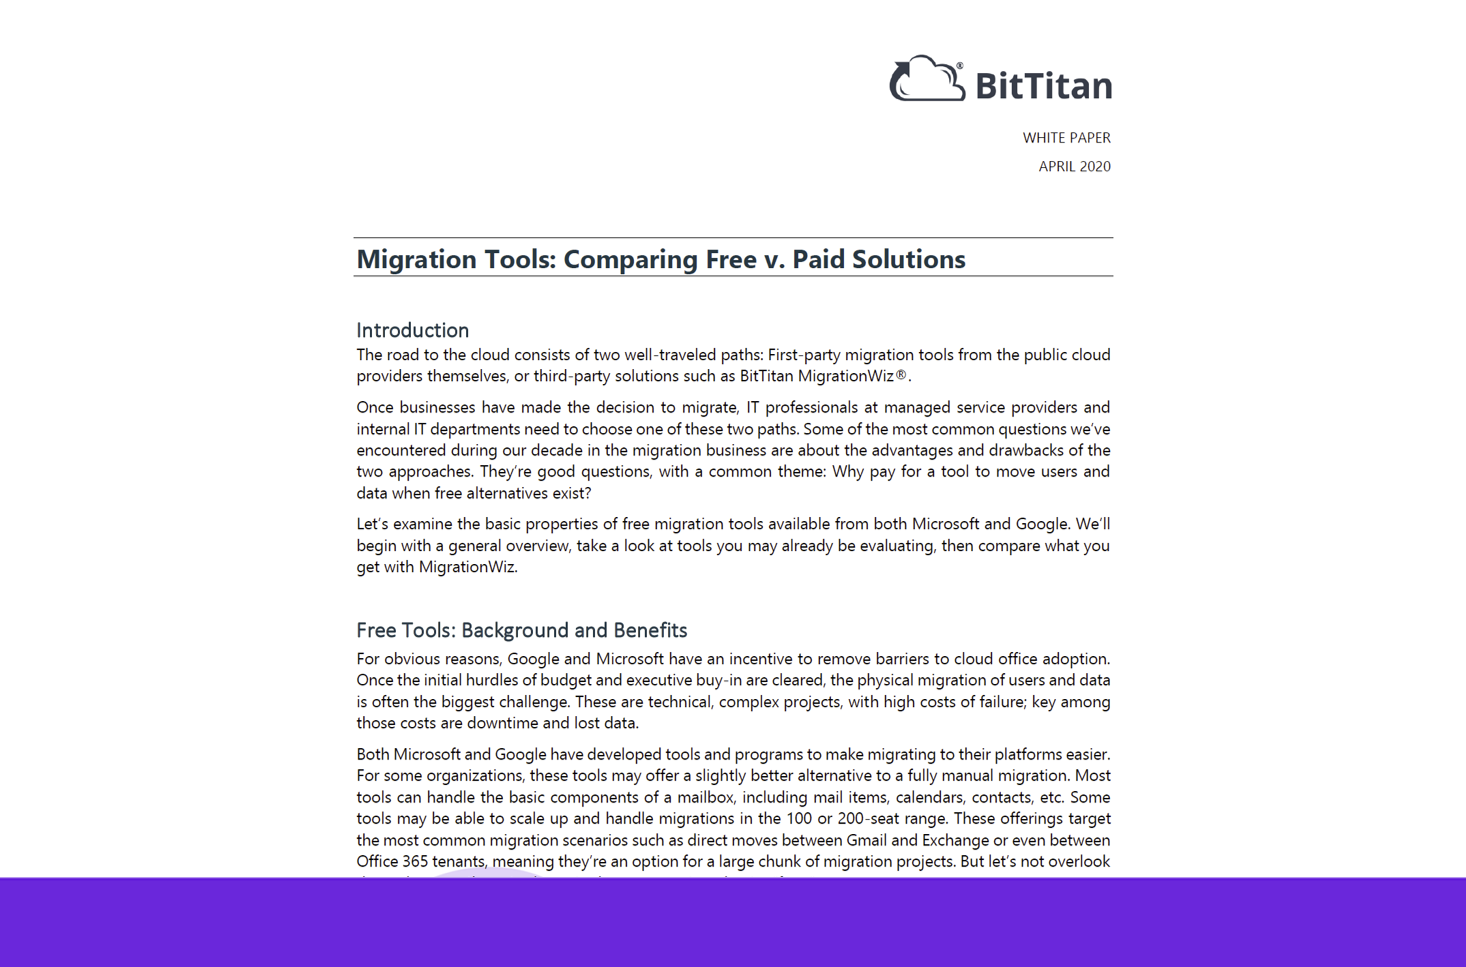 Migration Tools: Comparing Free v. Paid Solutions